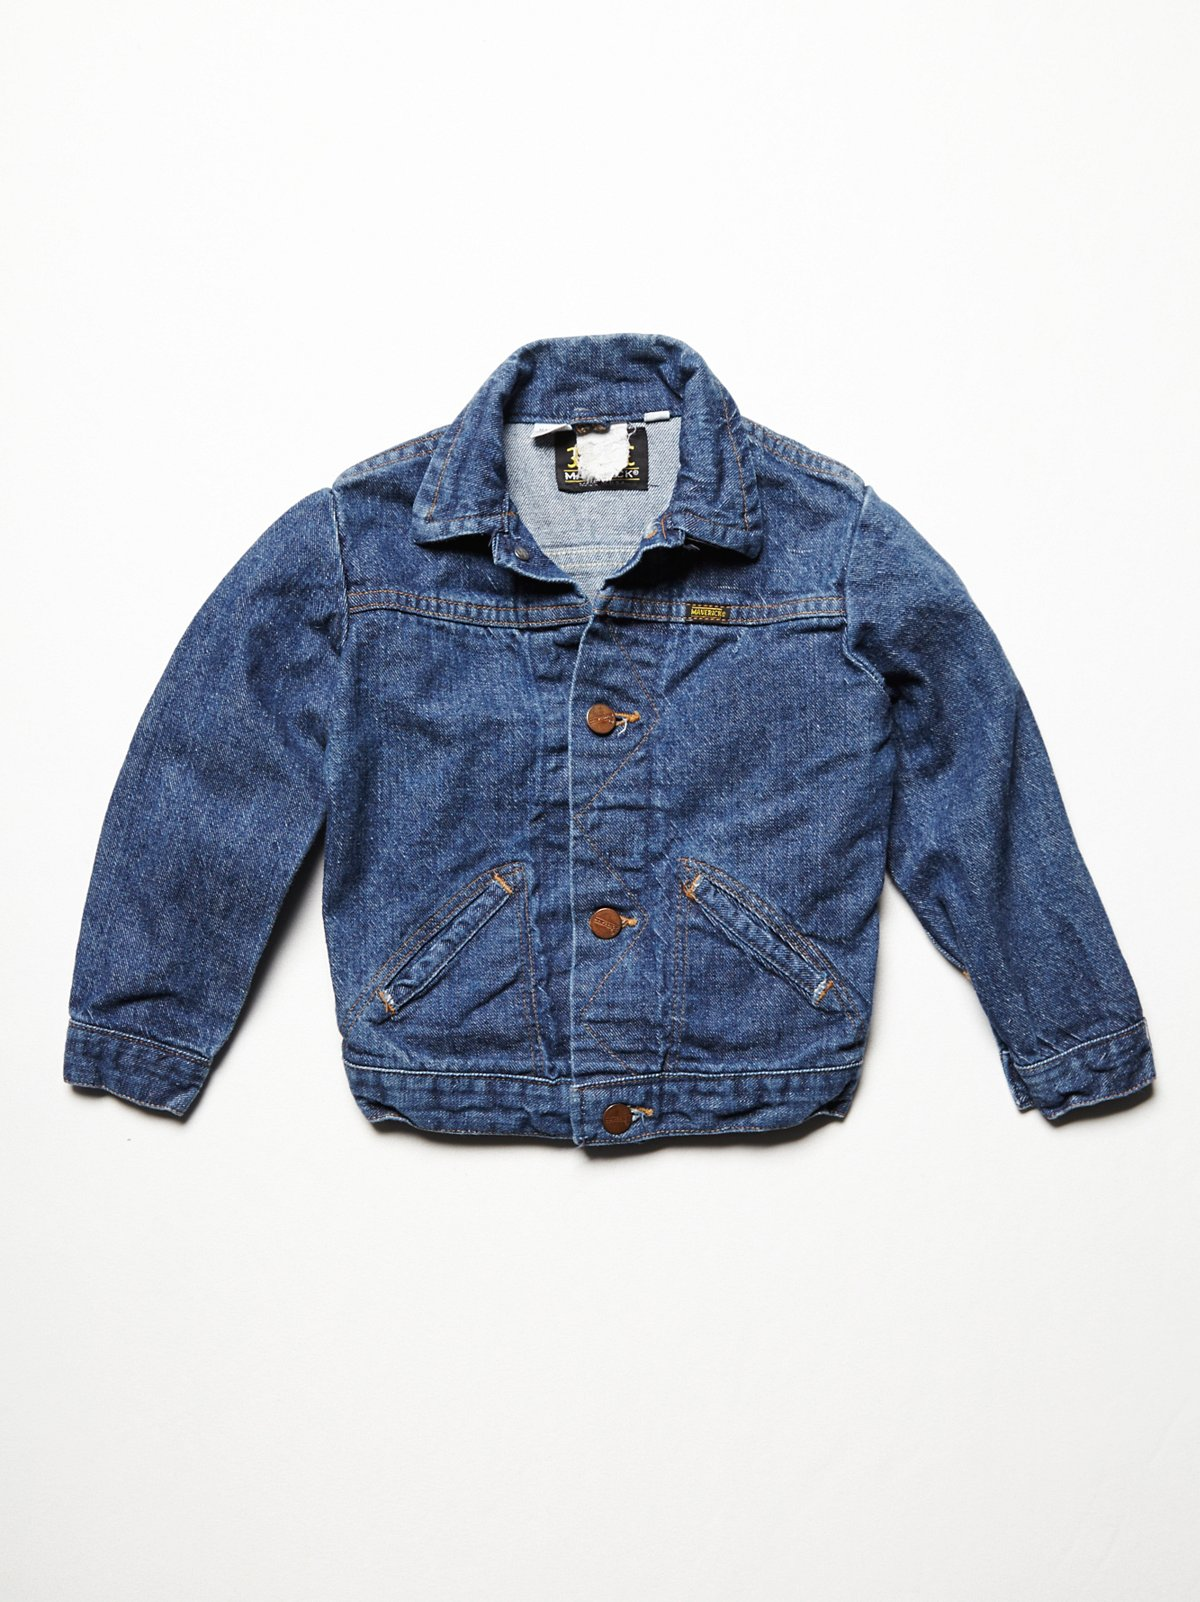 Vintage Kids Denim Jacket